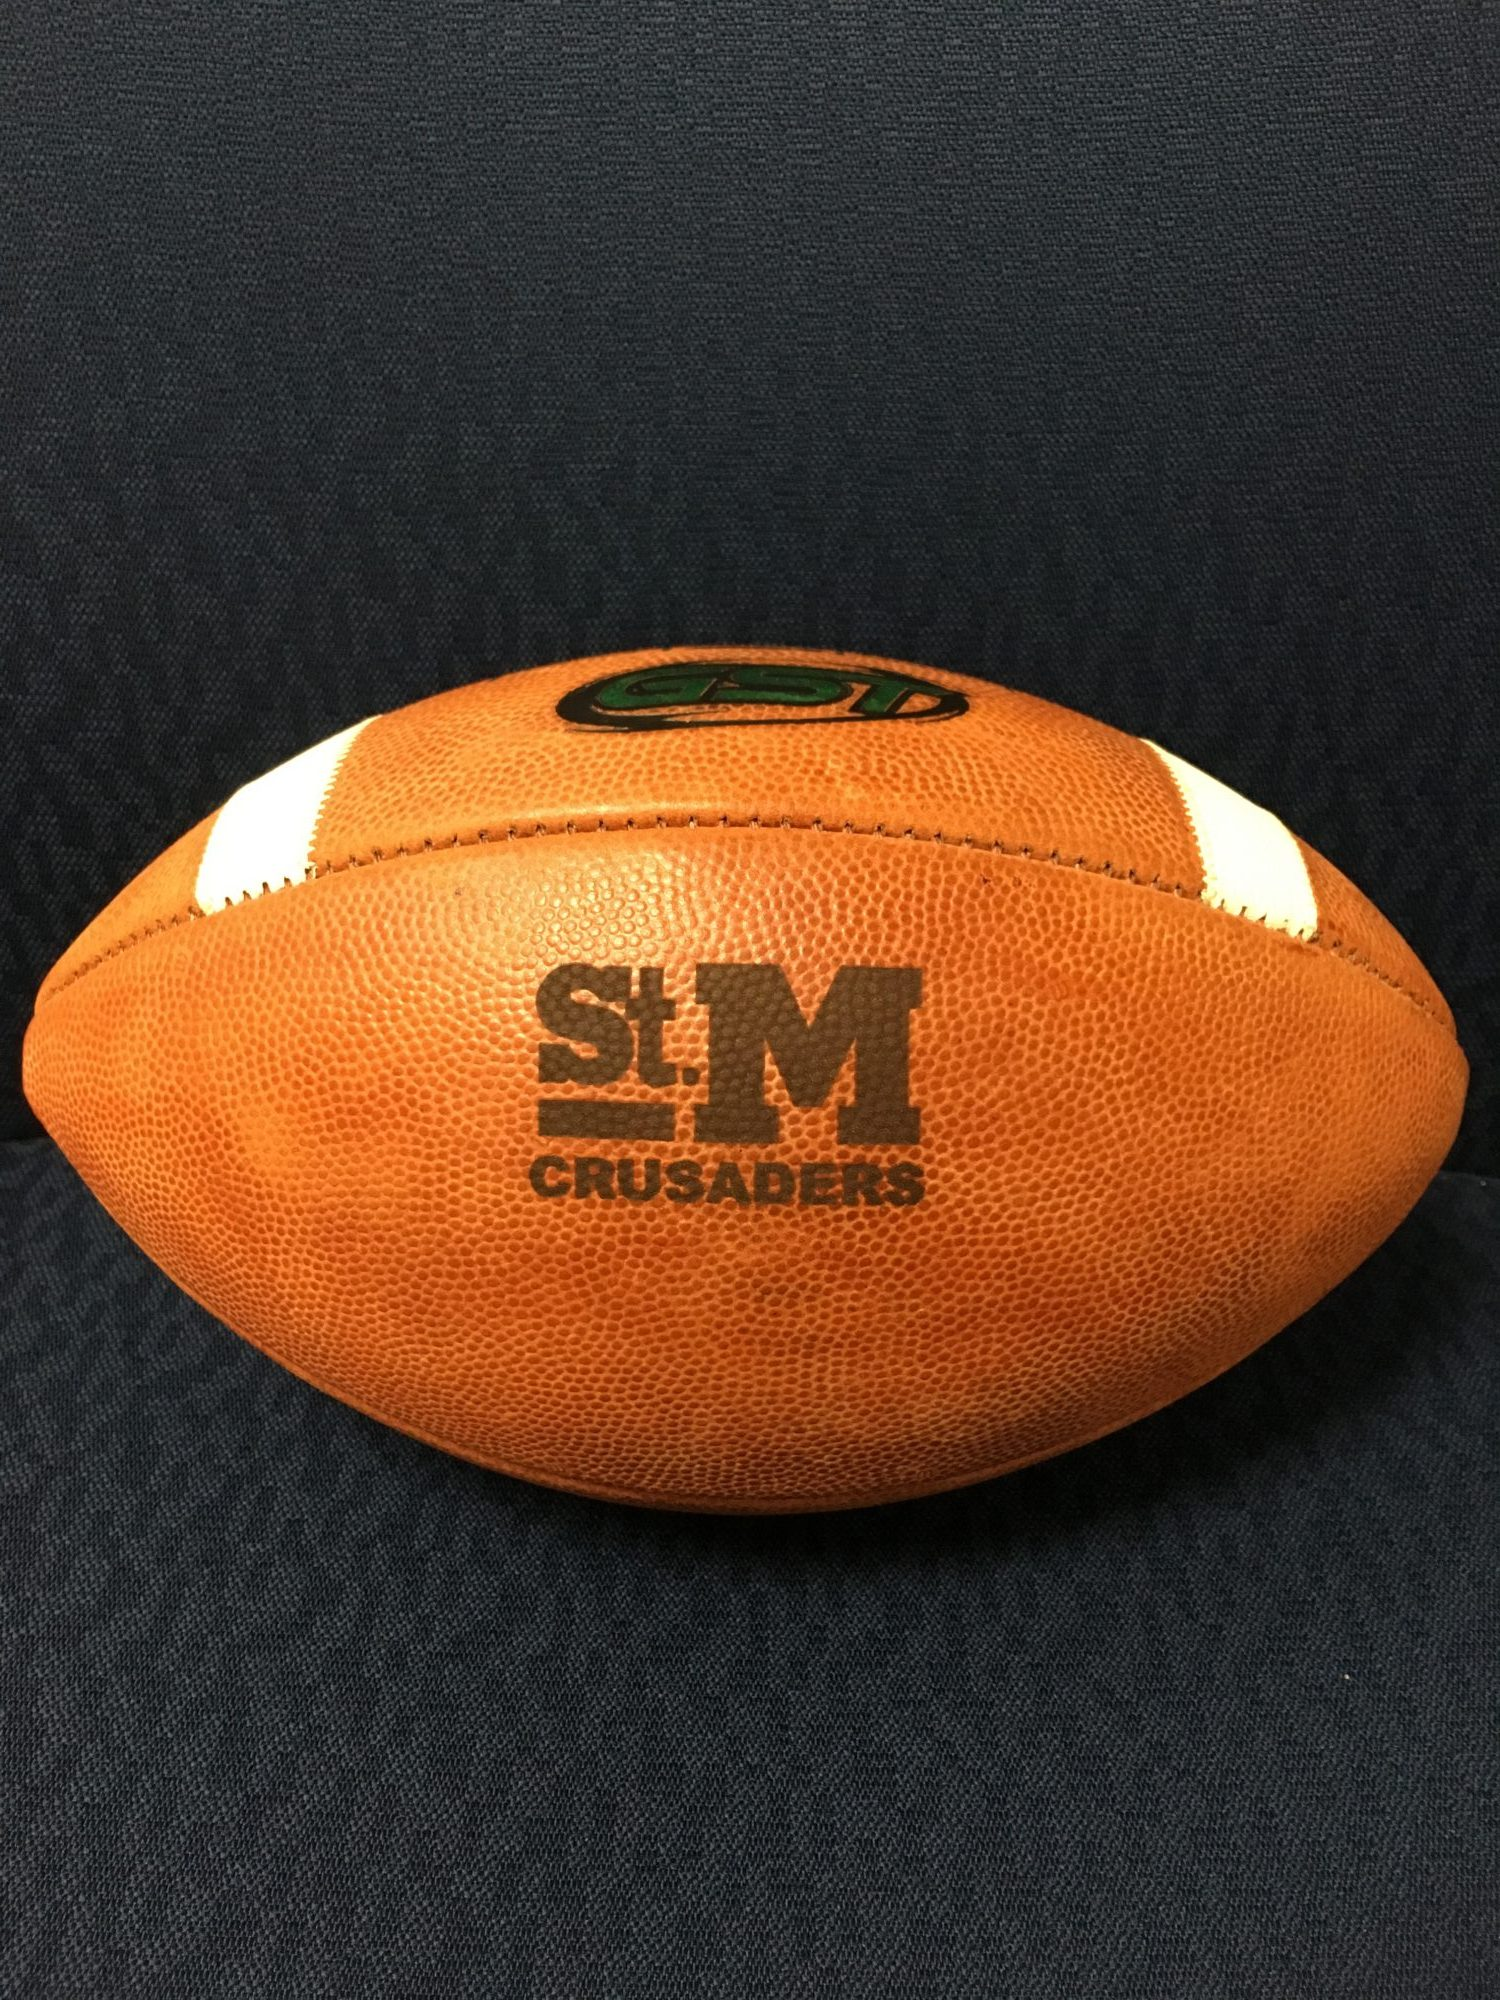 Football Meeting Wednesday, March 21st